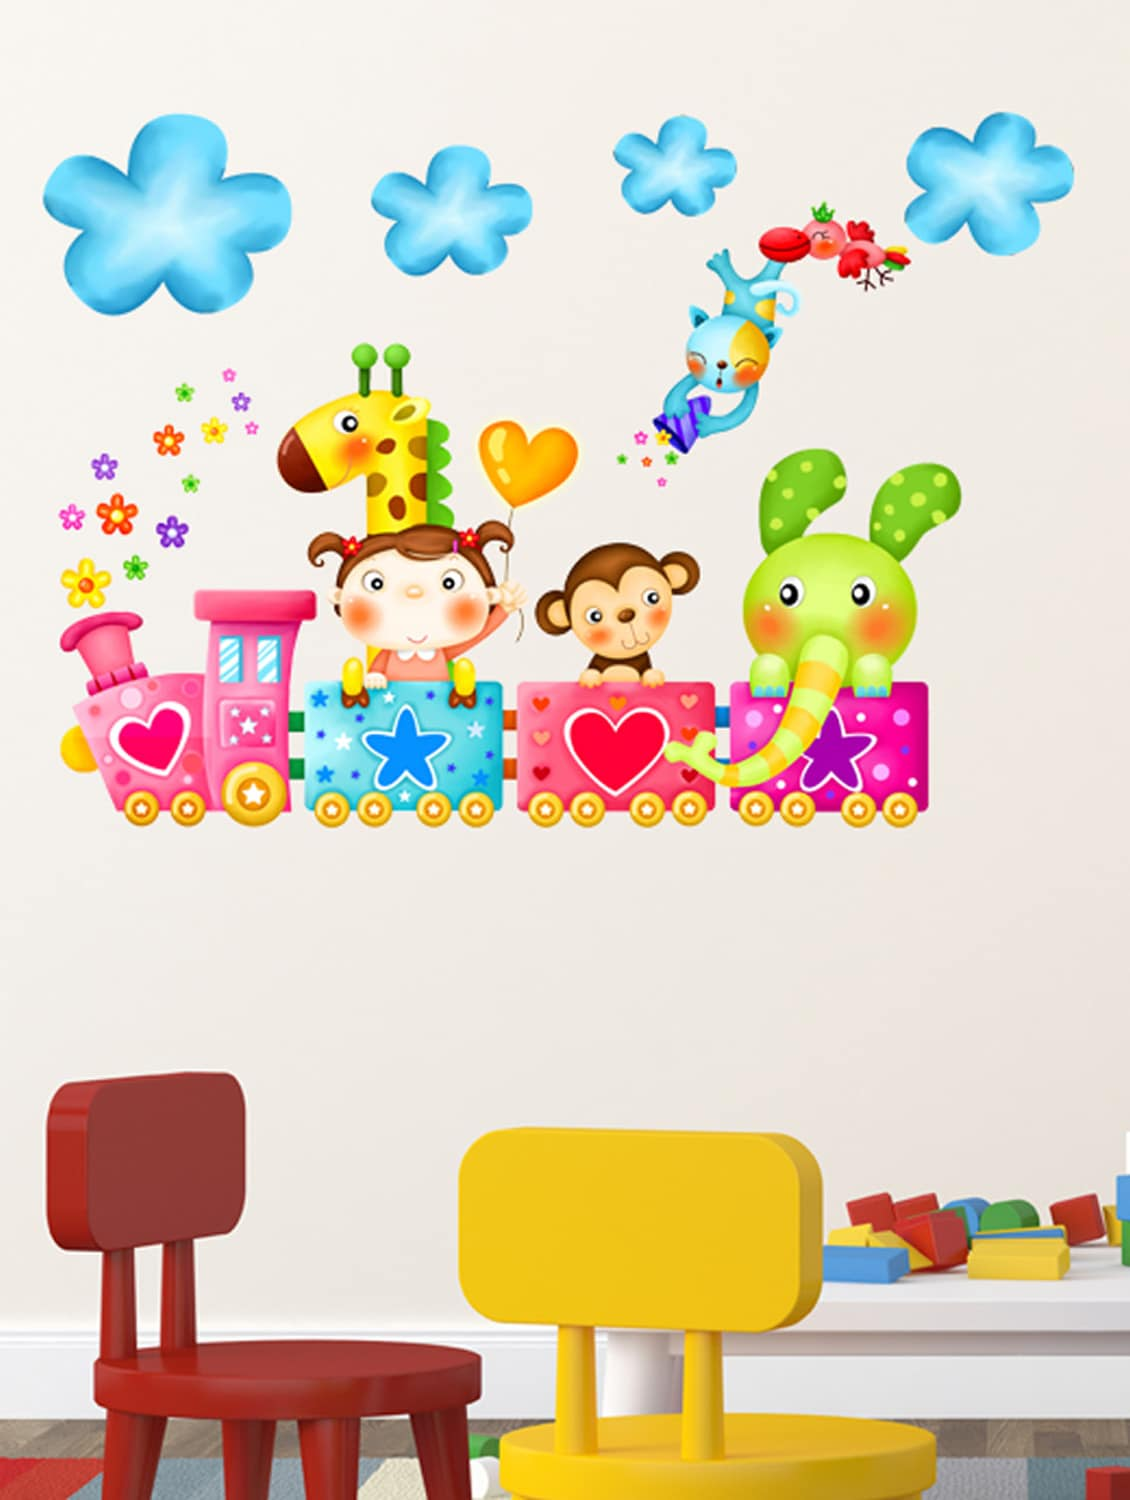 Buy Wall Stickers Kids Room Train Happy Cartoon Animals With Clouds